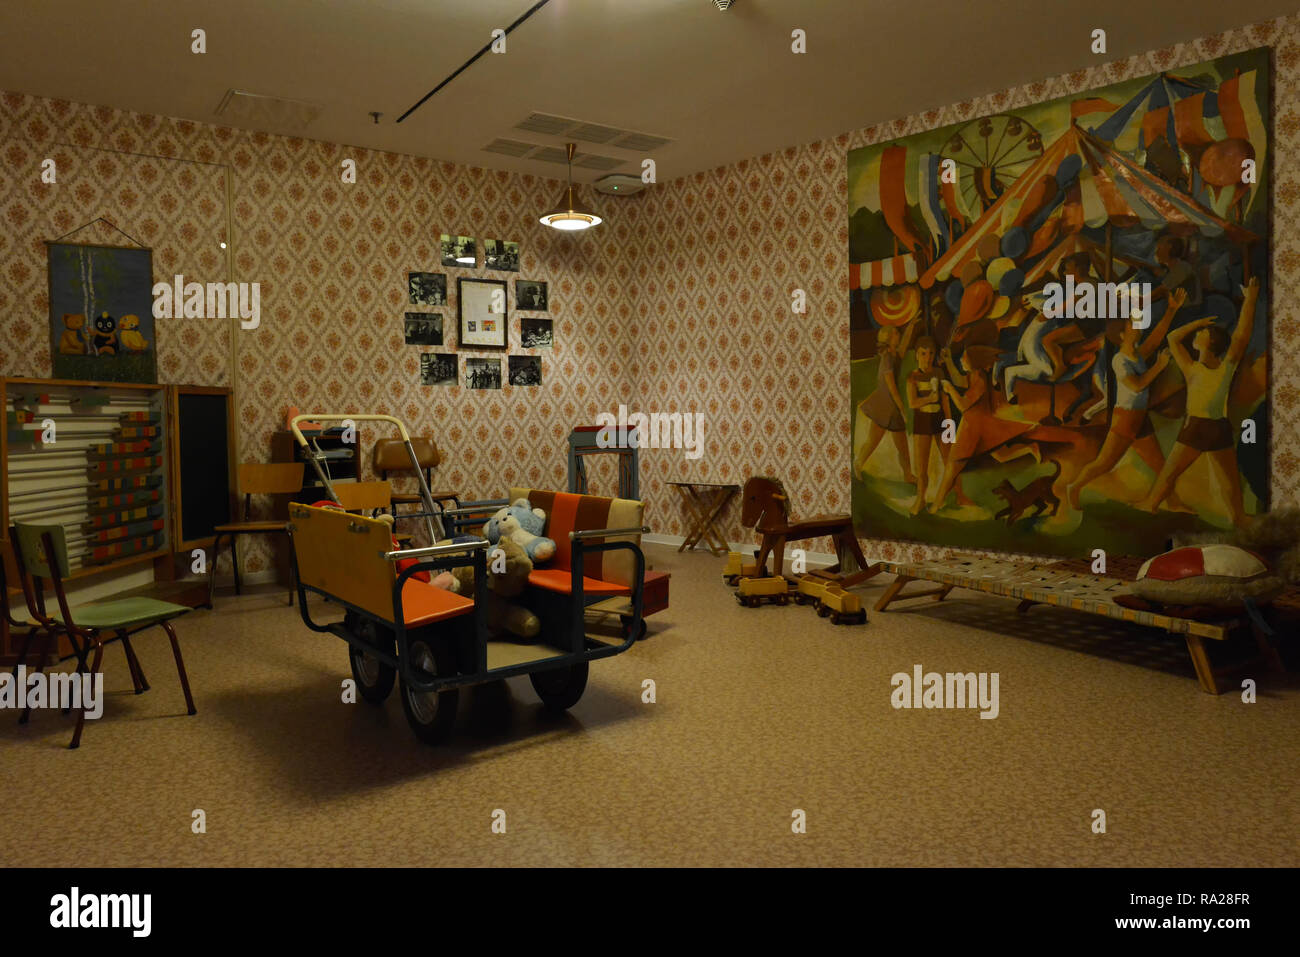 Typical room facilities of a kindergarten in the former GDR, displayed in the DDR museum in Berlin Mitte. - Stock Image